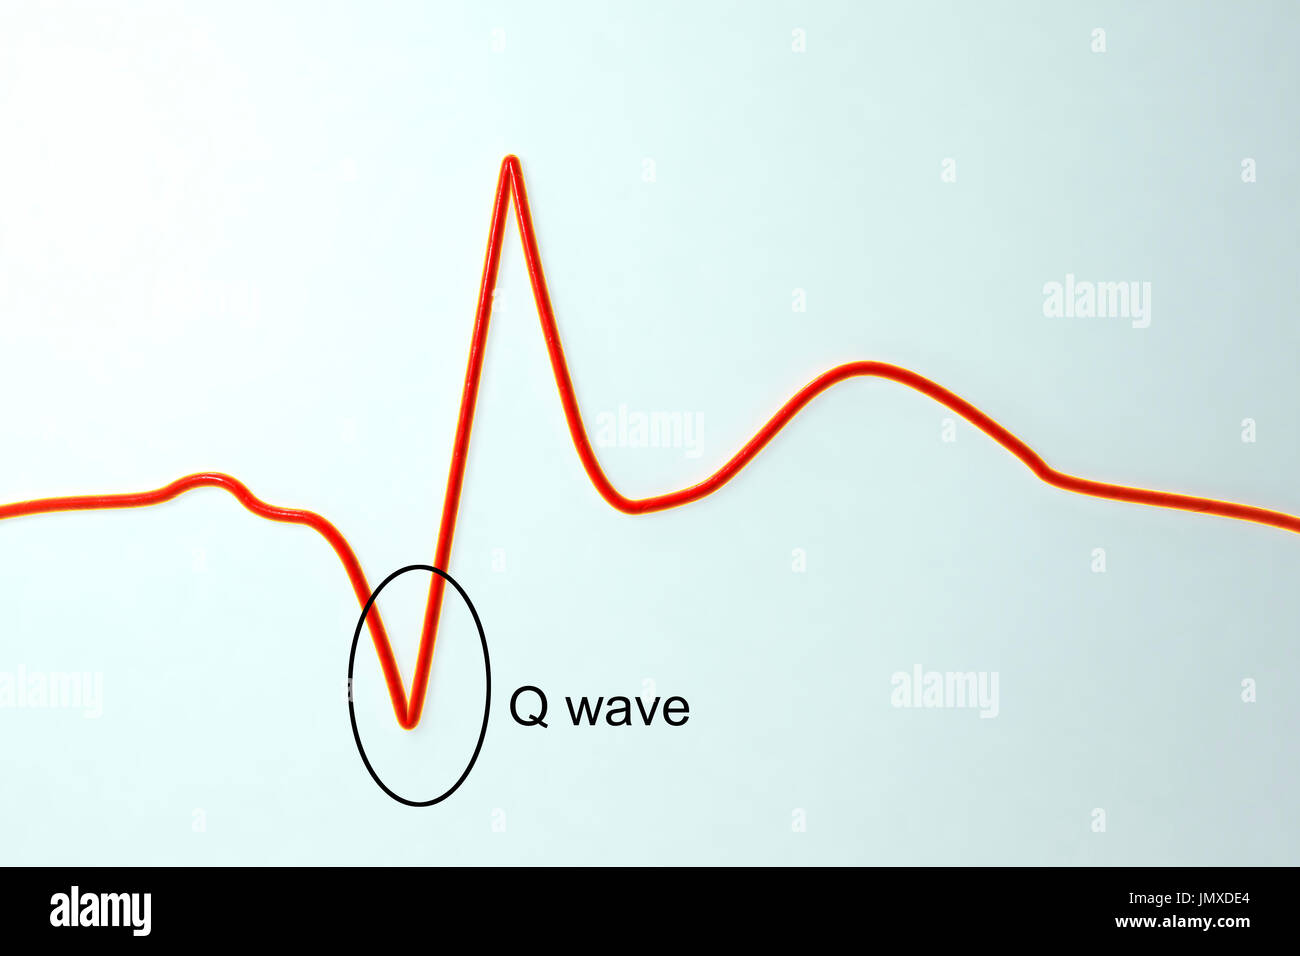 Electrocardiogram (ECG) during a myocardial infarction (heart attack). Computer illustration showing formation of pathological Q wave. - Stock Image